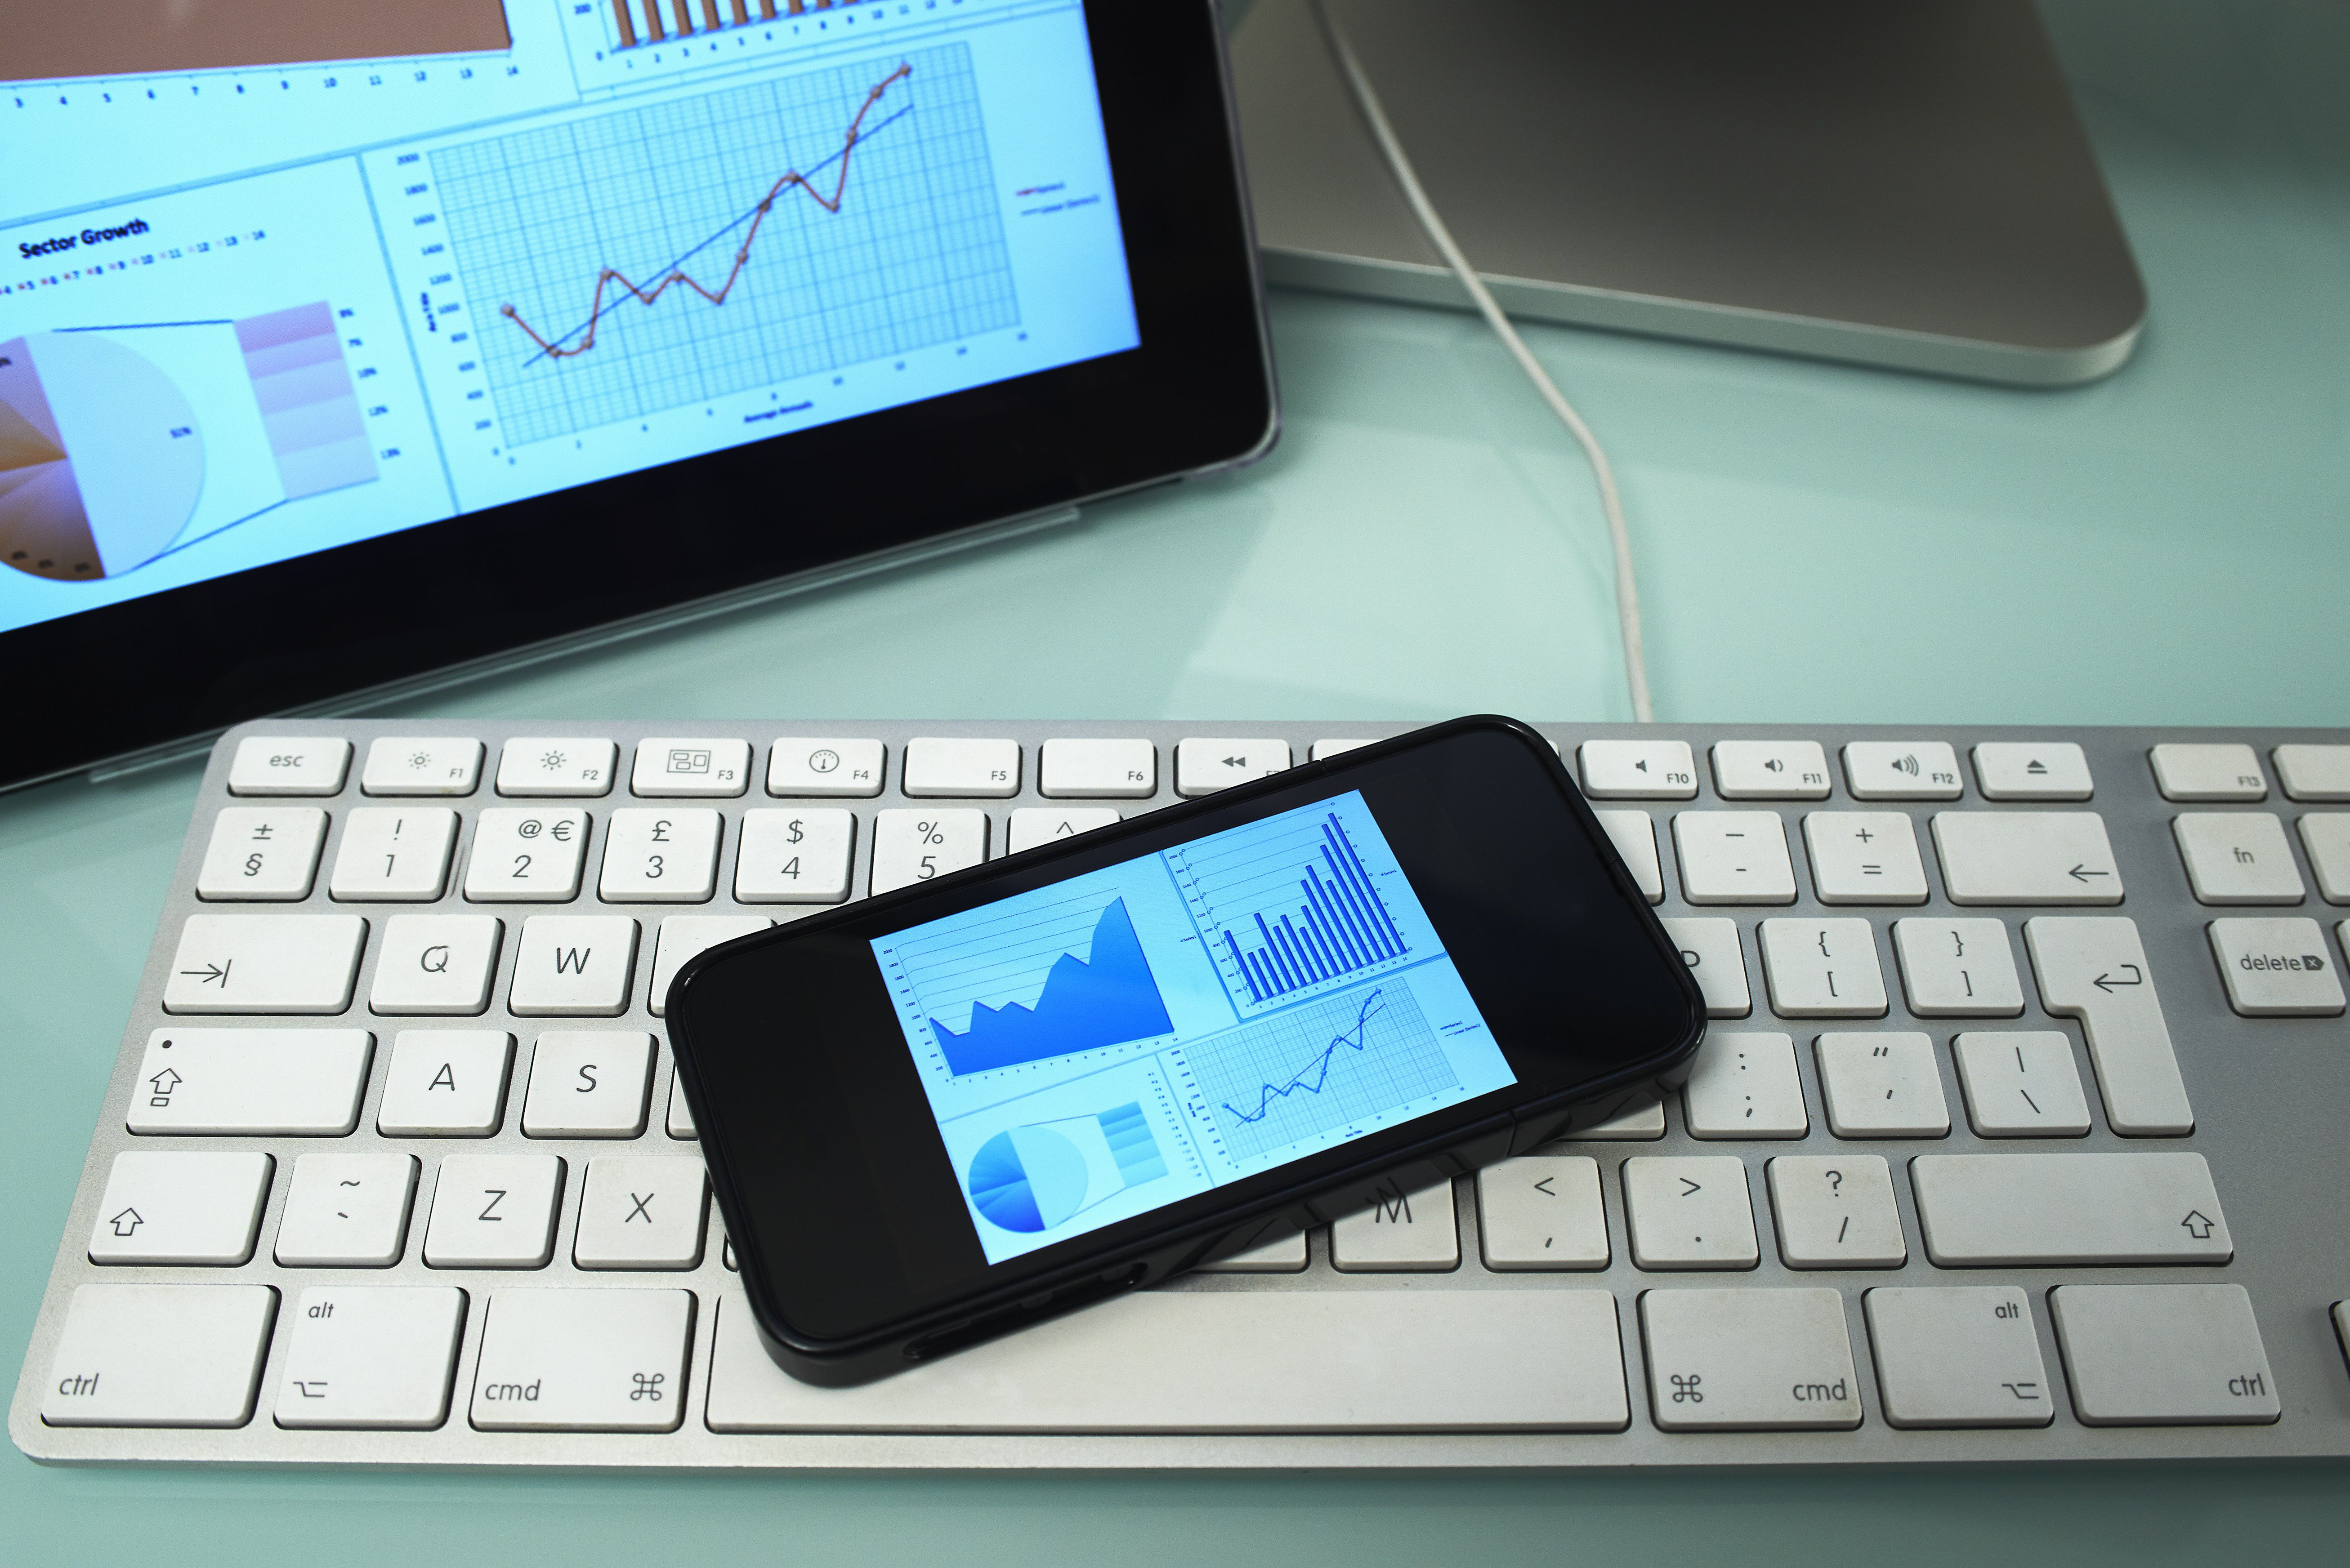 After Hour Stock Quotes The Best Stock Market Apps For Android